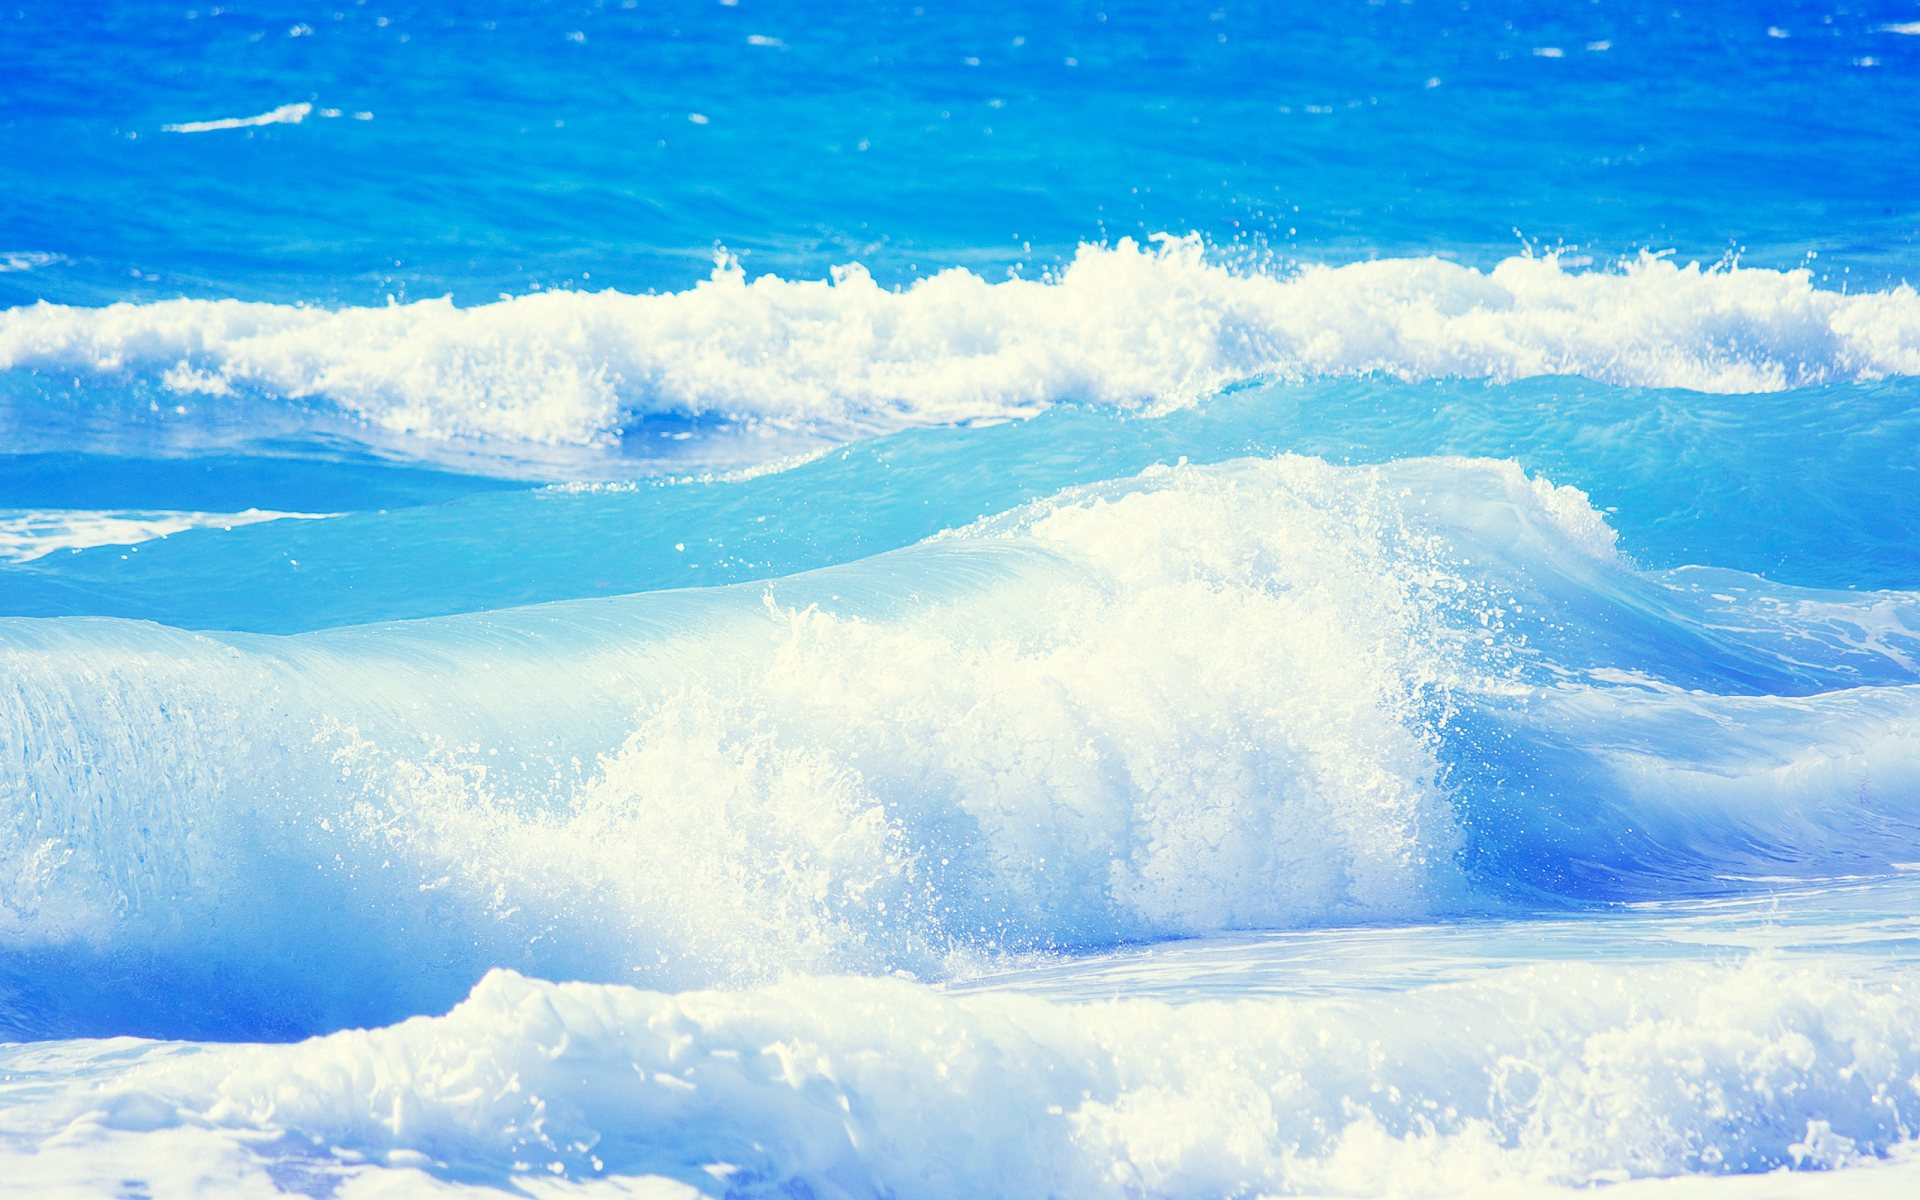 Blue Ocean Wallpaper 1920x1200